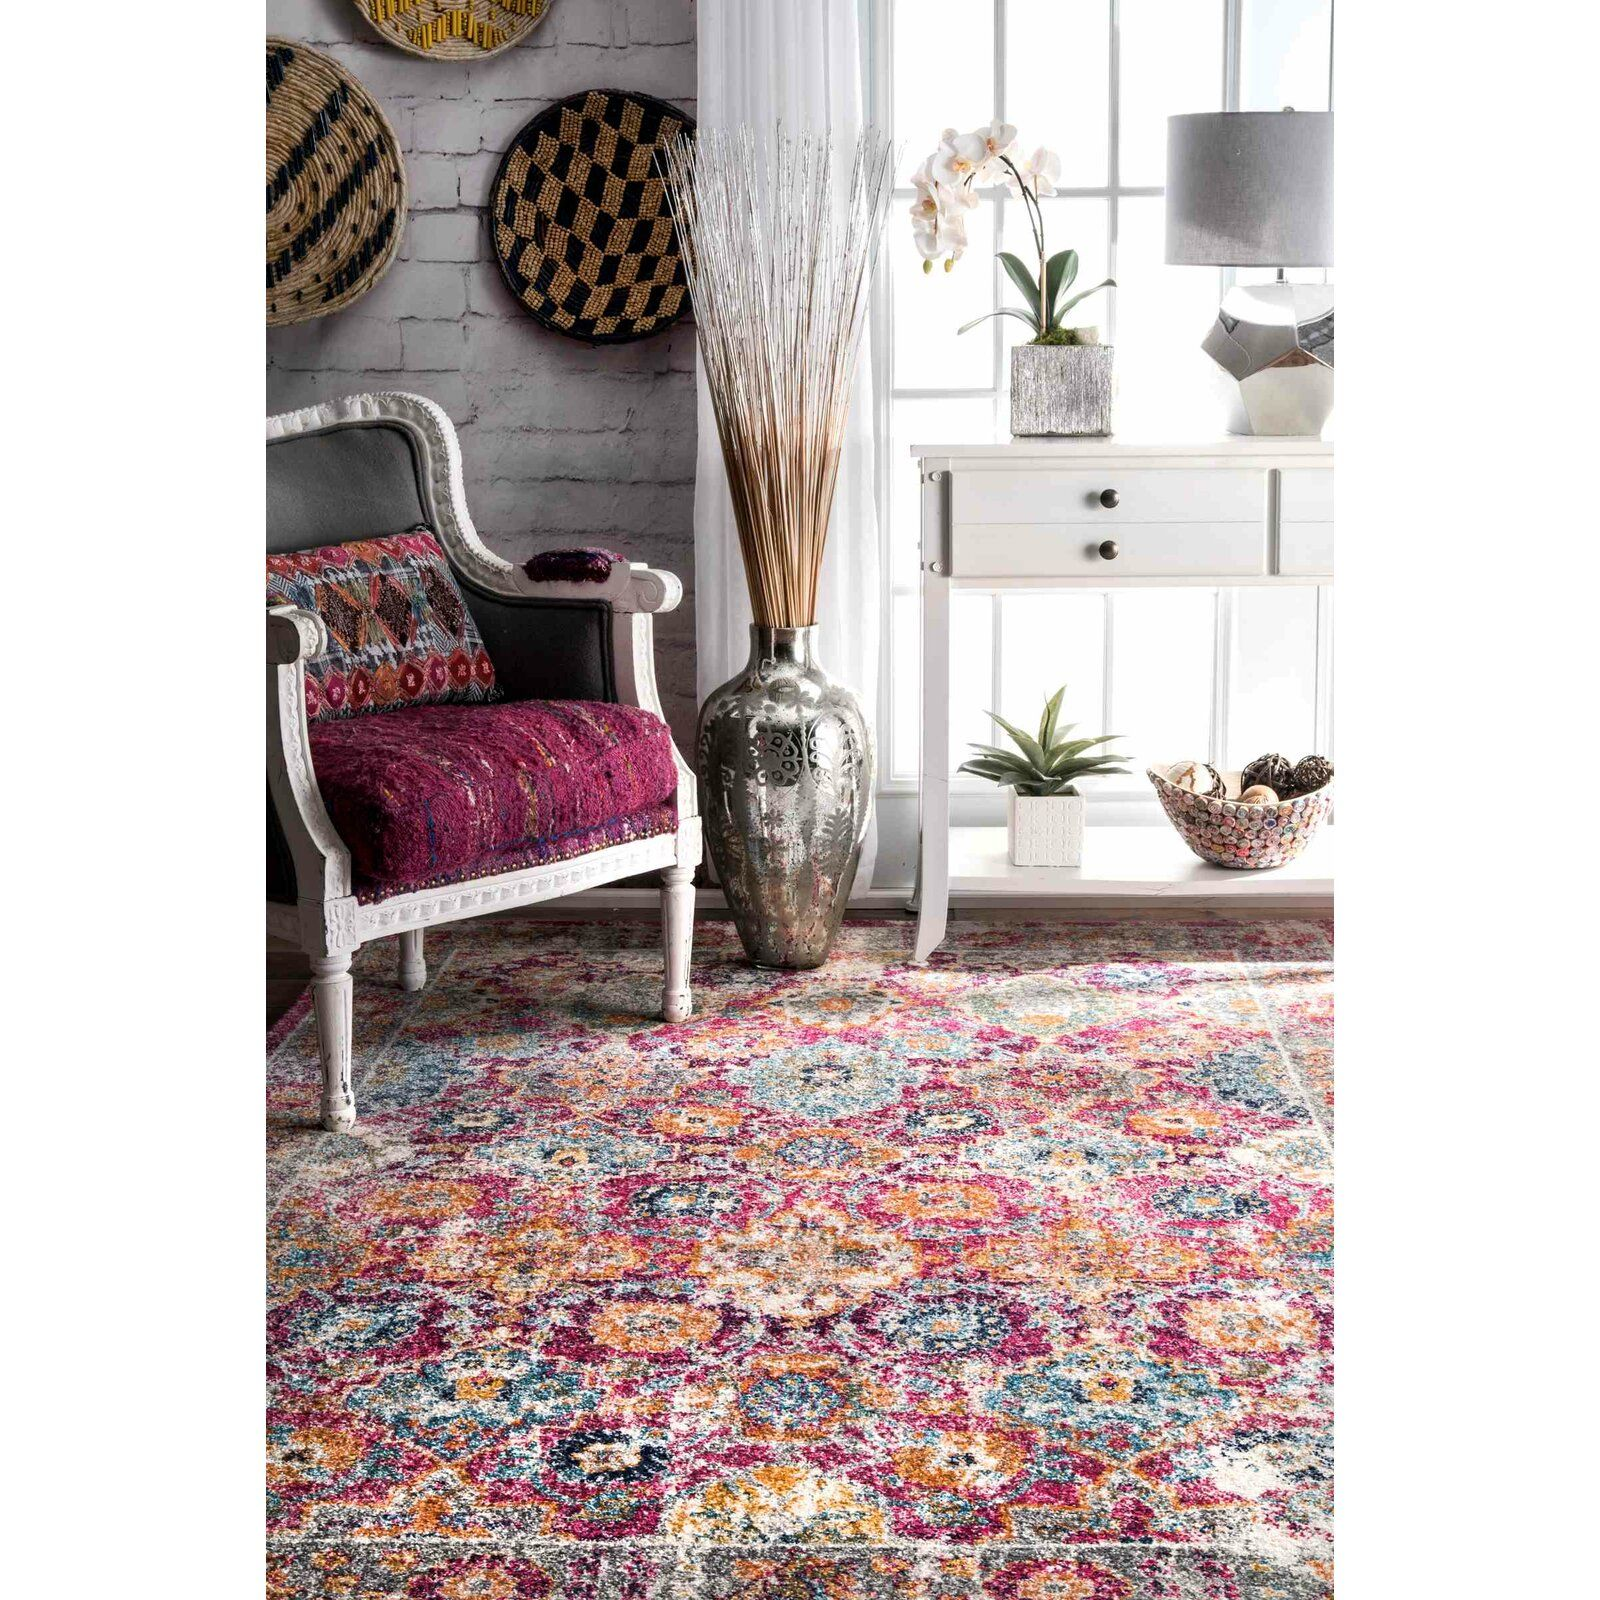 Paige Pink Area Rug In 2020 Living Room Decor Furniture Pink Area Rug Area Rugs